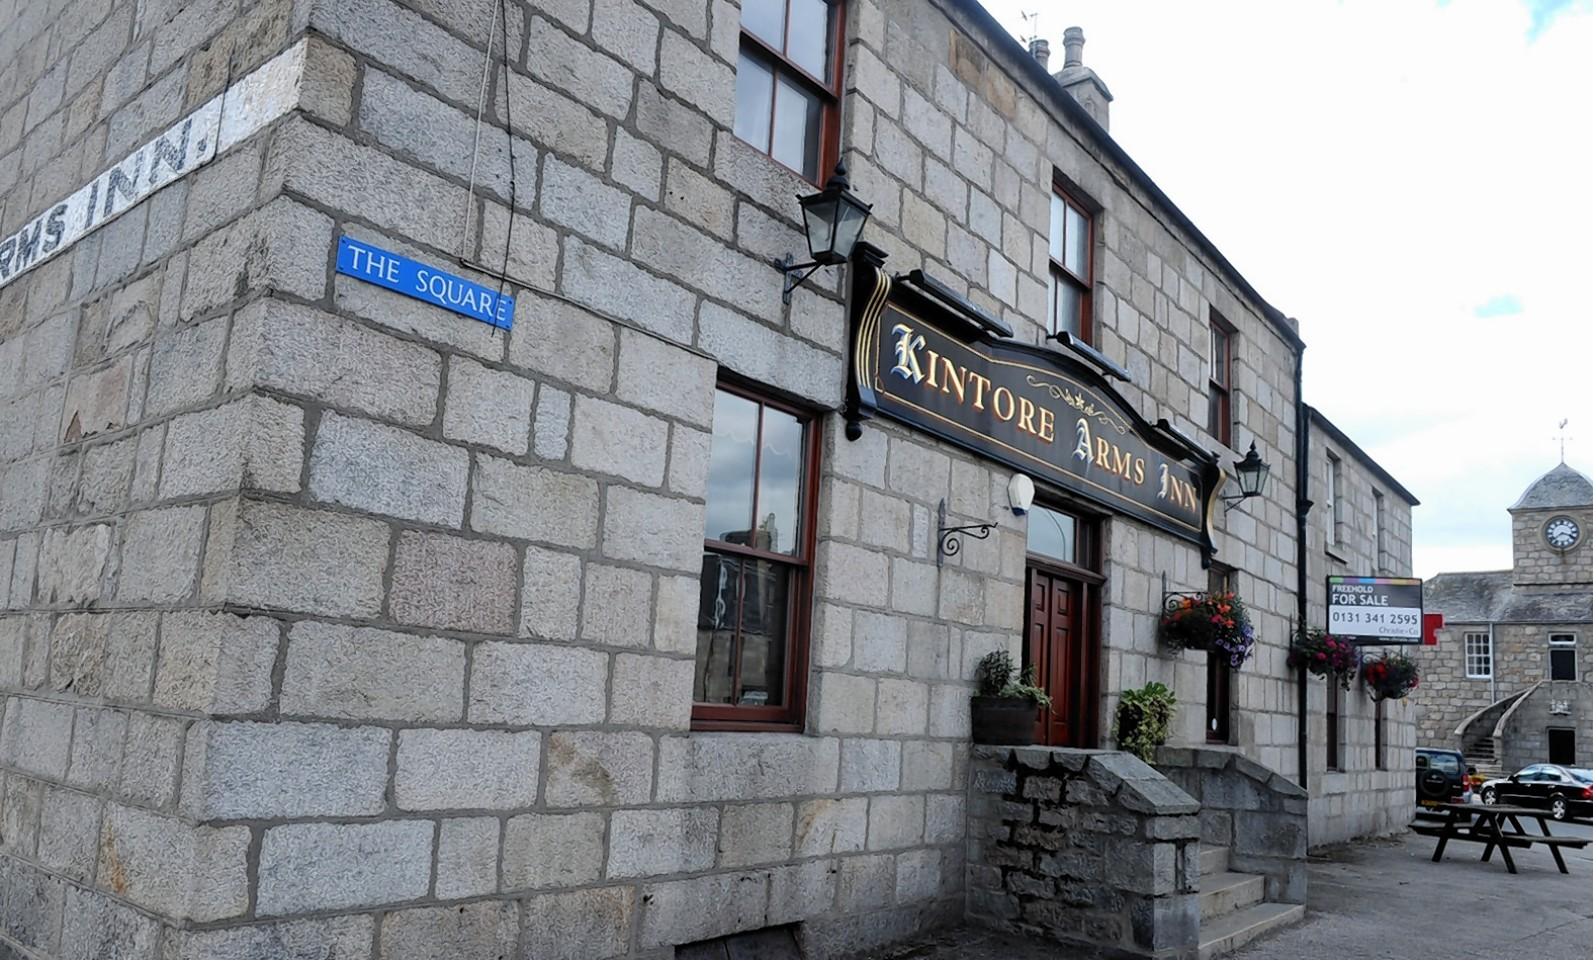 Plans to reopen the Kintore Arms Inn have been approved